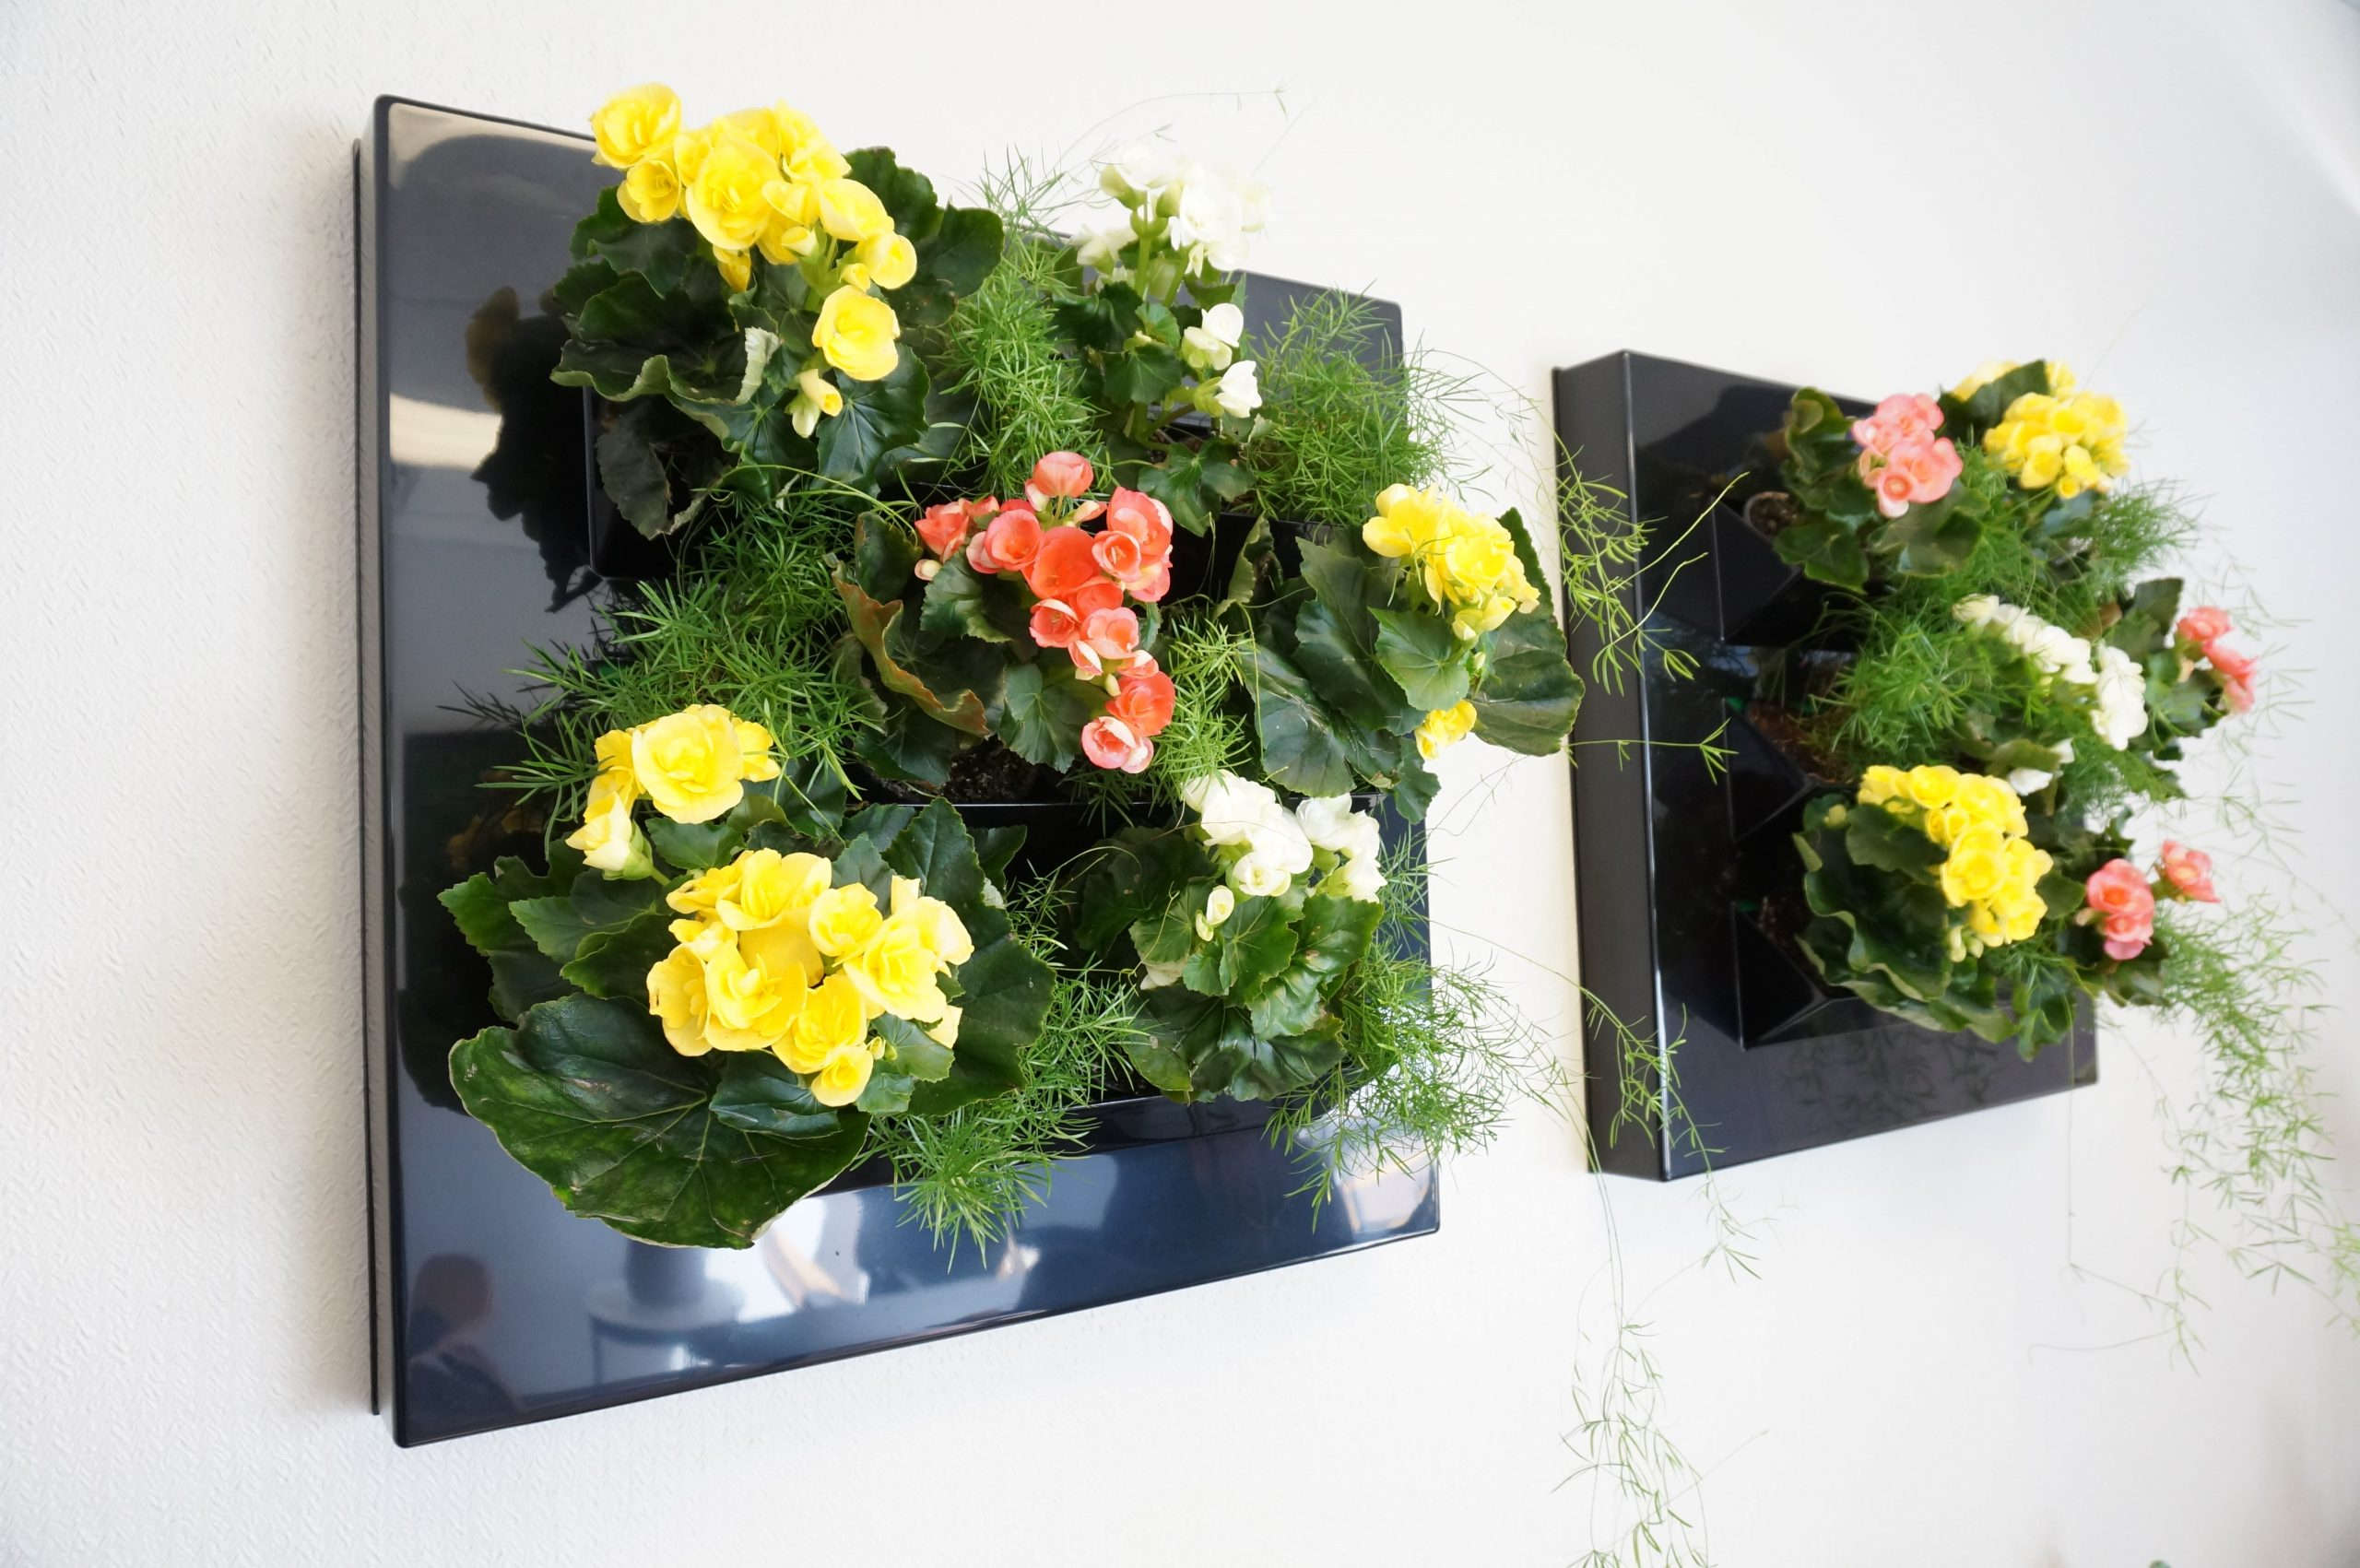 Begonias in Holly's wall